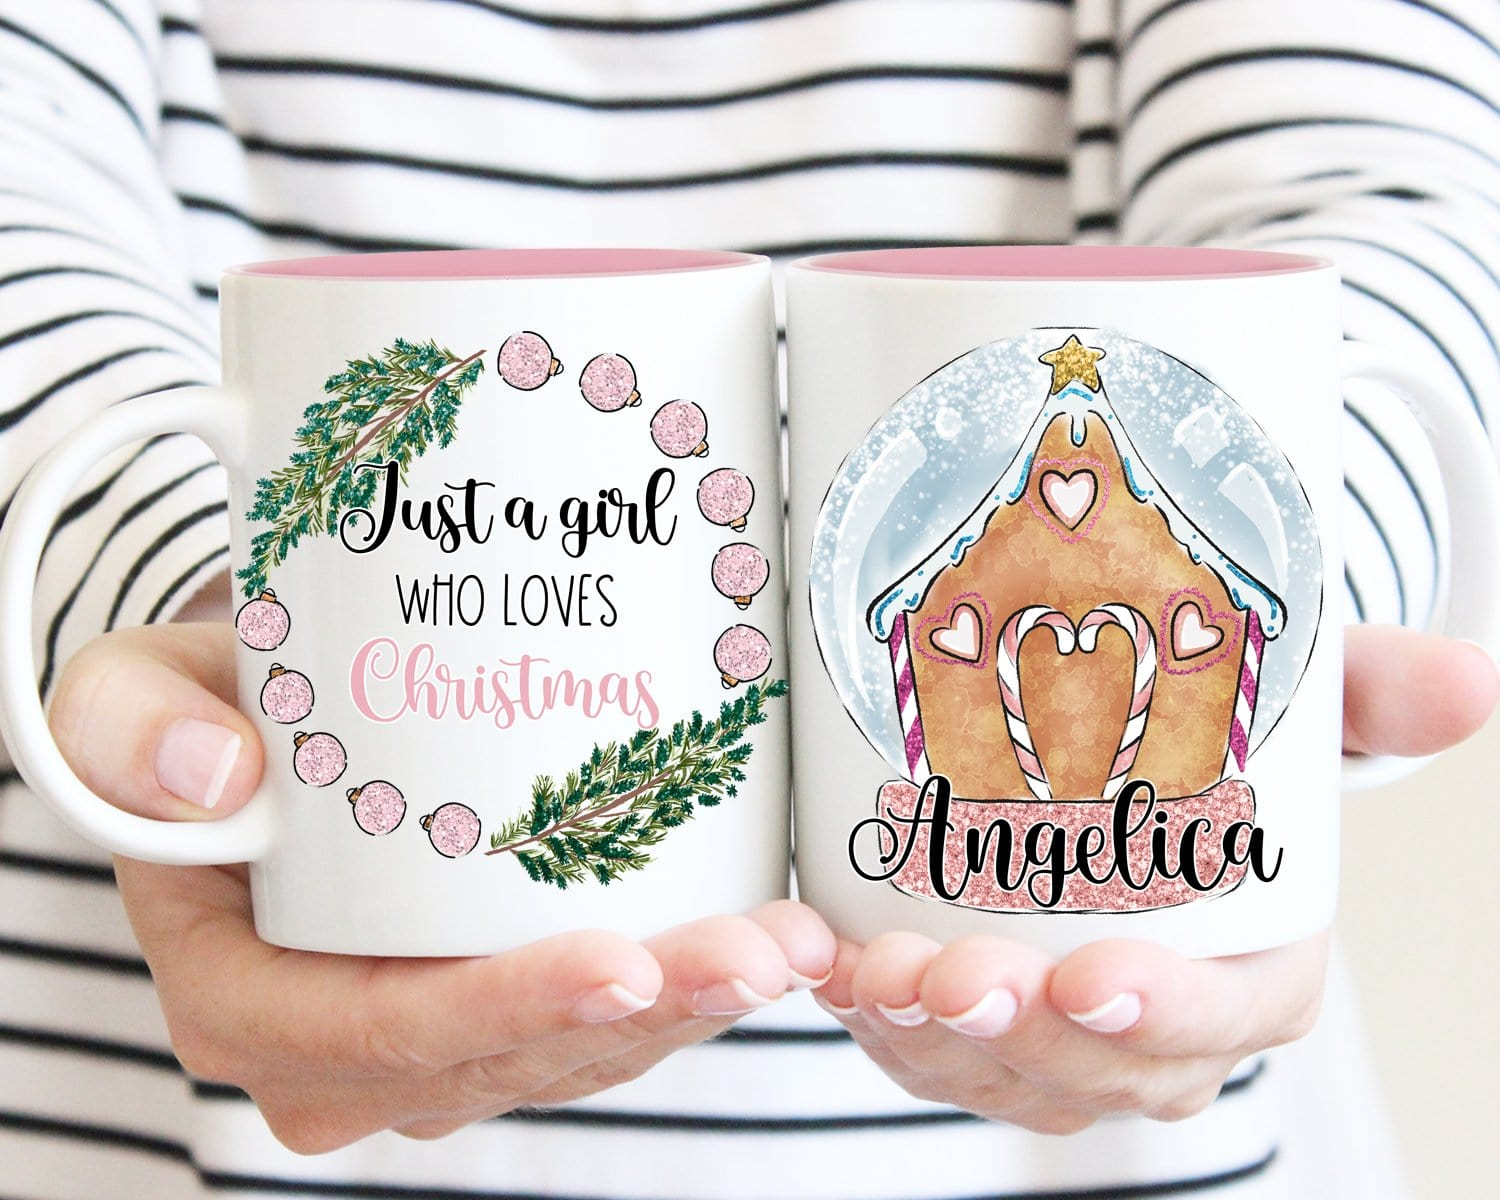 Just A Girl Who Loves Christmas Personalized Gingerbread House Mug